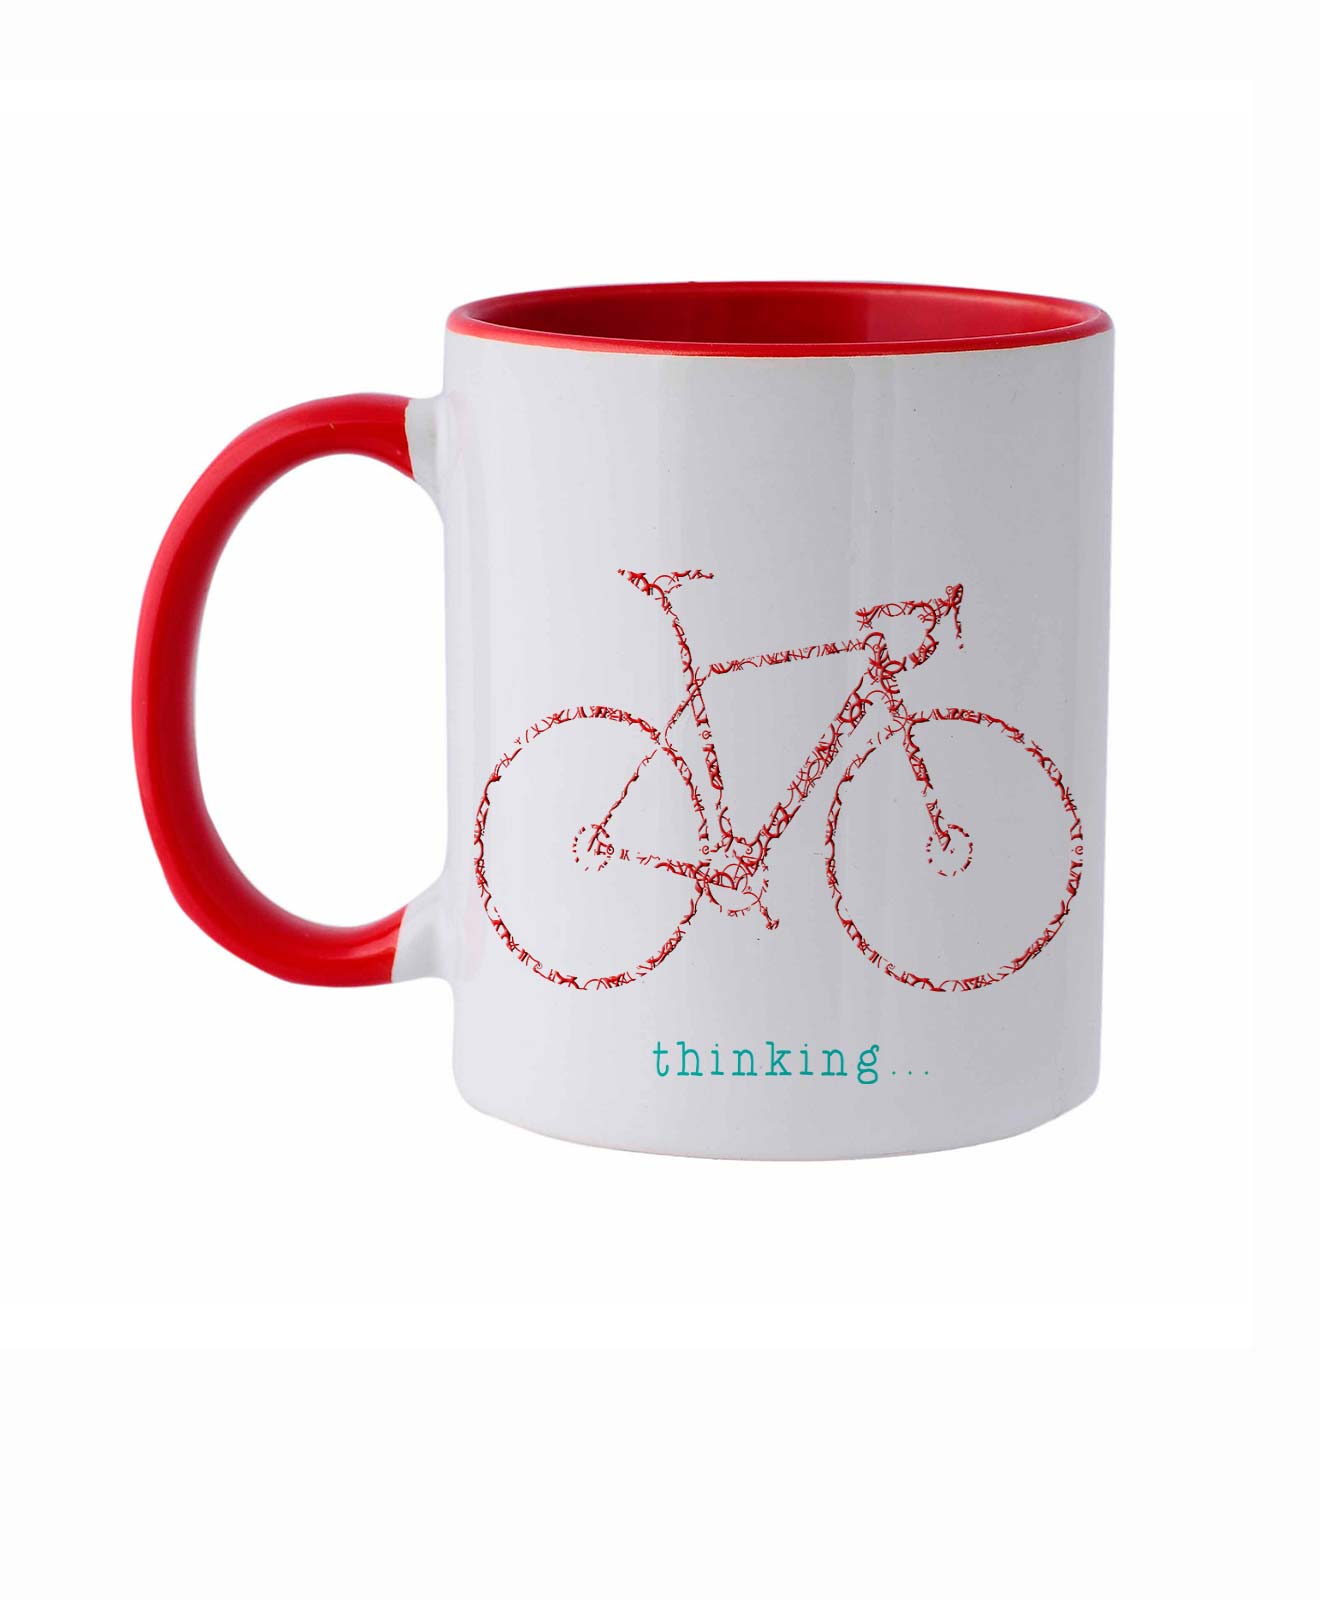 Bike Ceramic White Mug red road bike